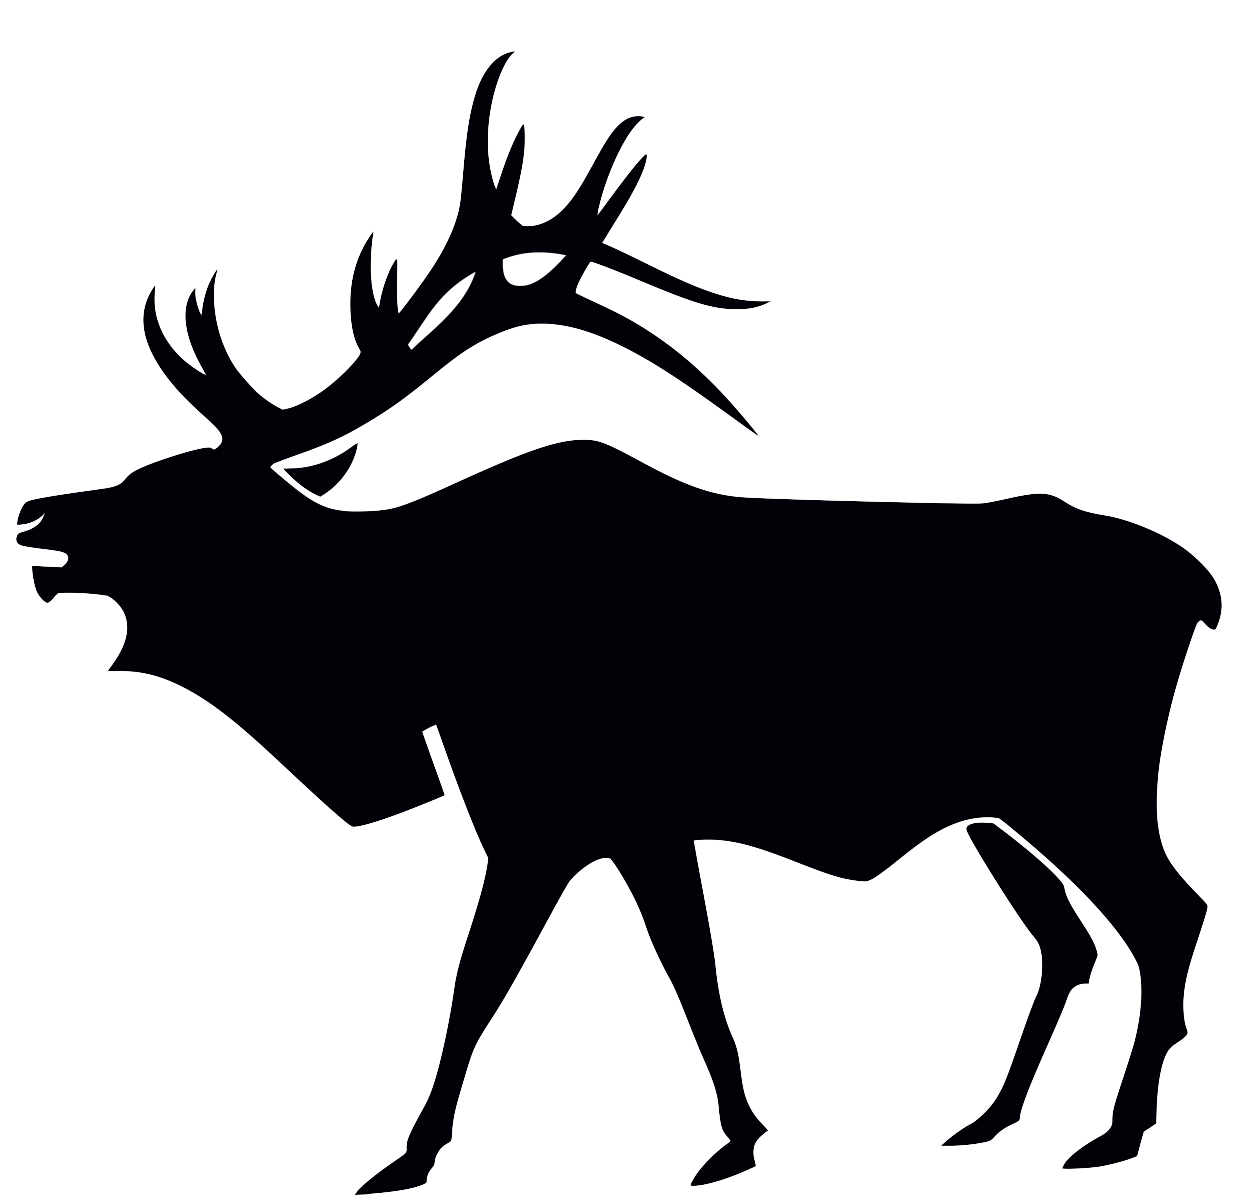 Hunting clipart decal. Bow hunter silhouette at